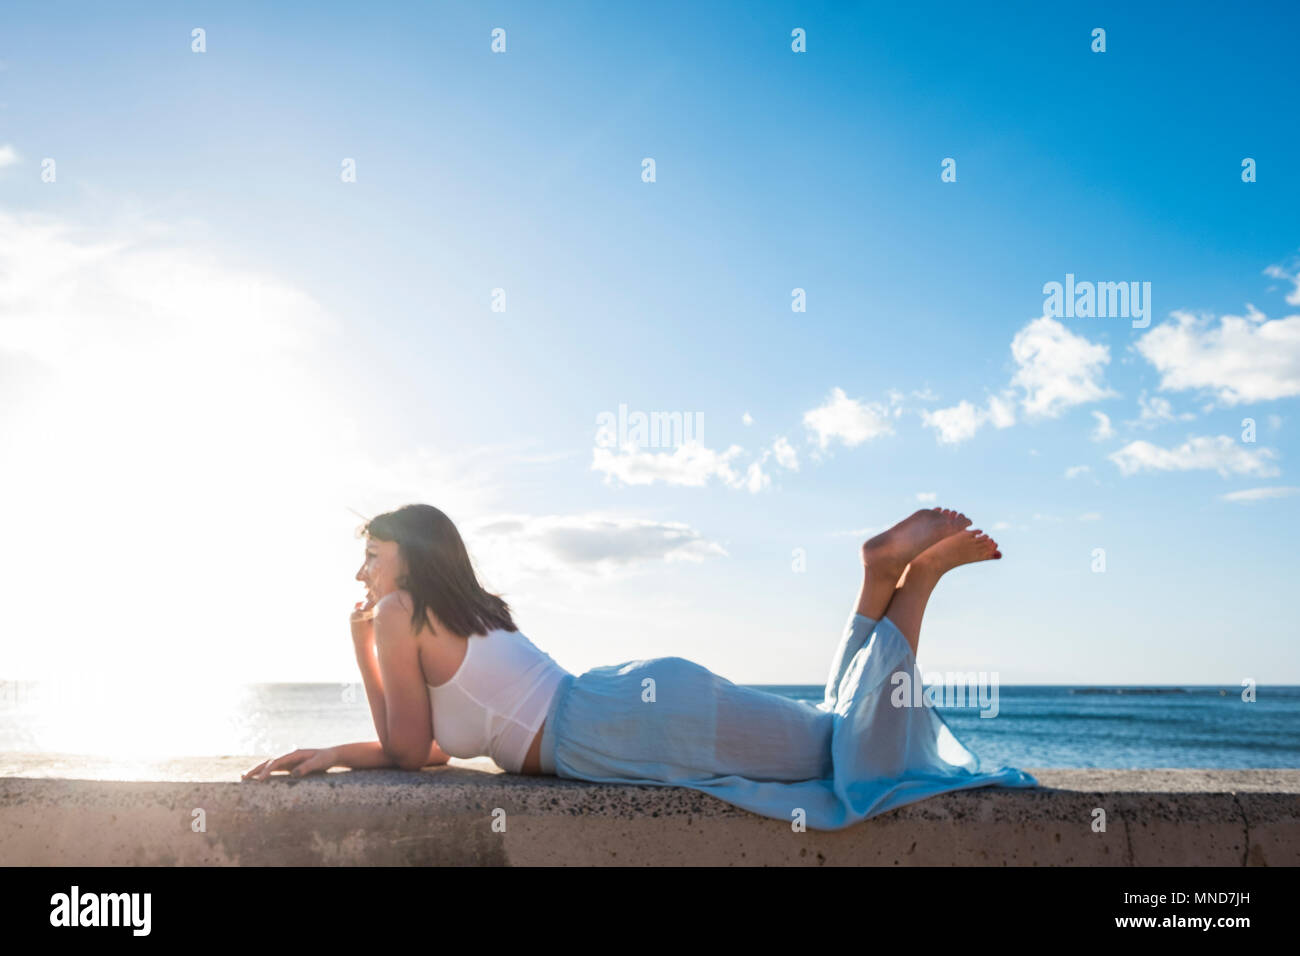 long hair spanish young woman erlaxing lay down on a wall near the beach. Sunlight on her beauty face, smile and enjoy the time. Stock Photo